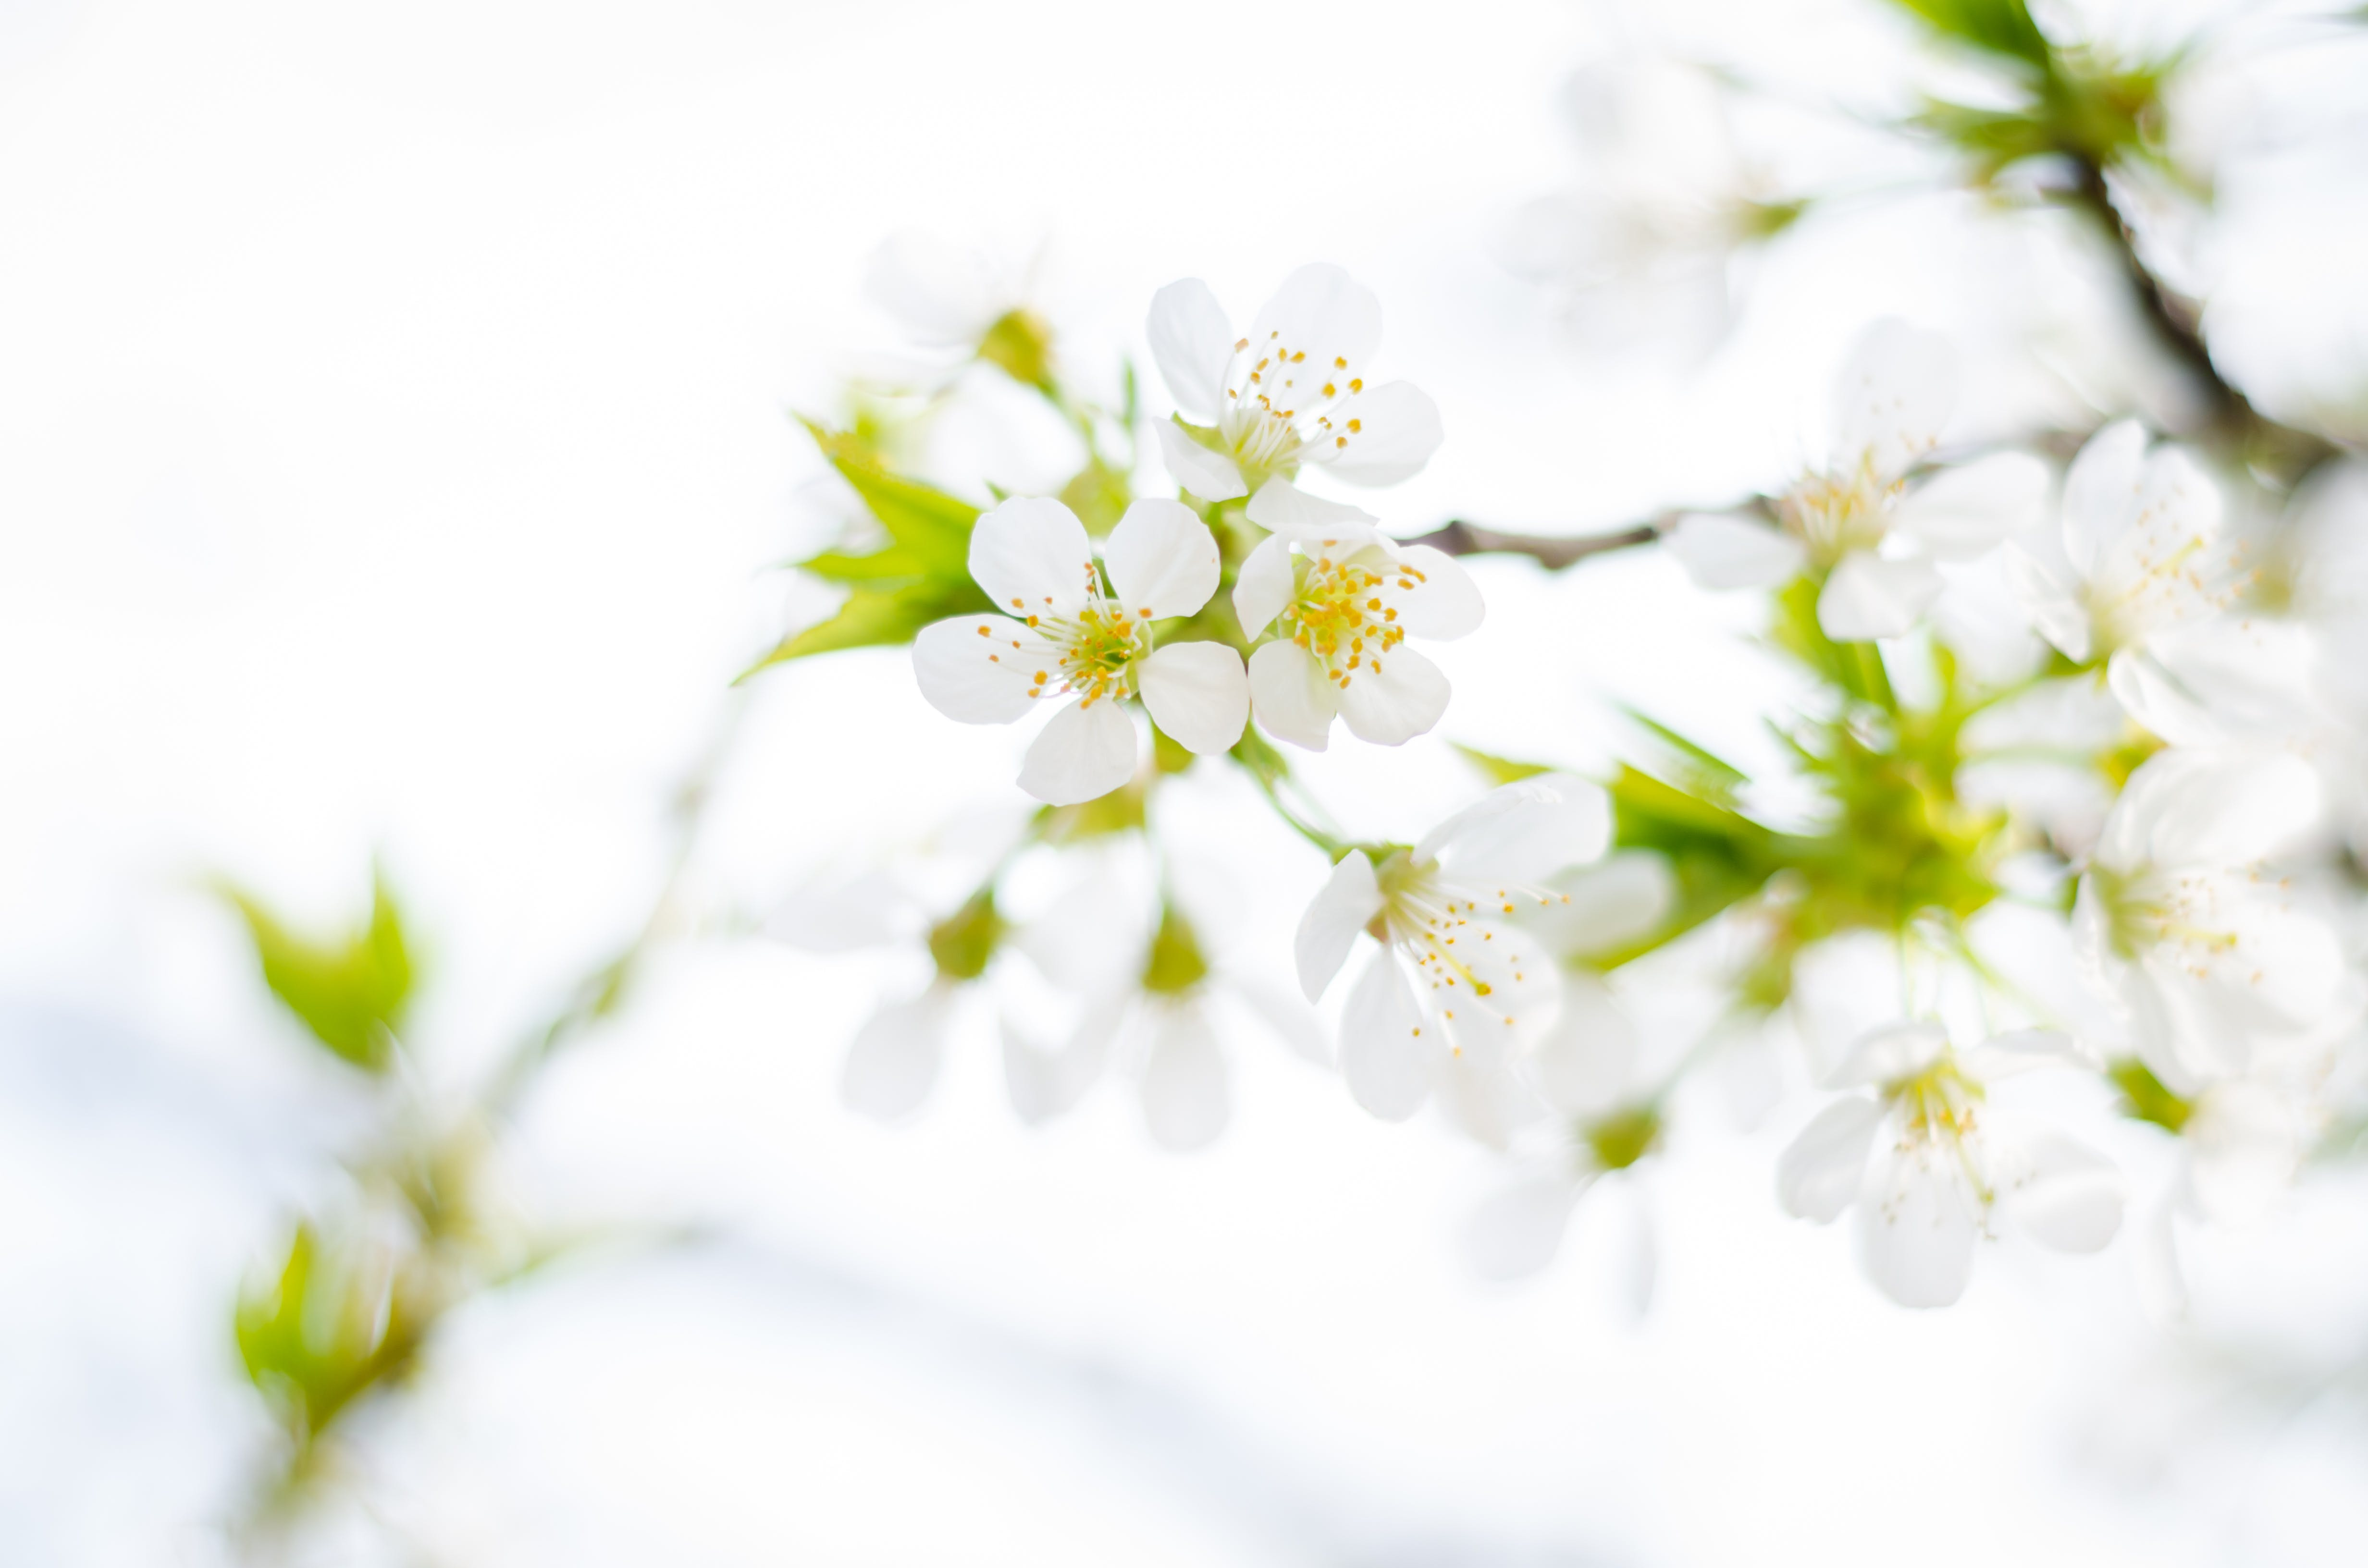 White 5-petaled Flower in Close-up Photography